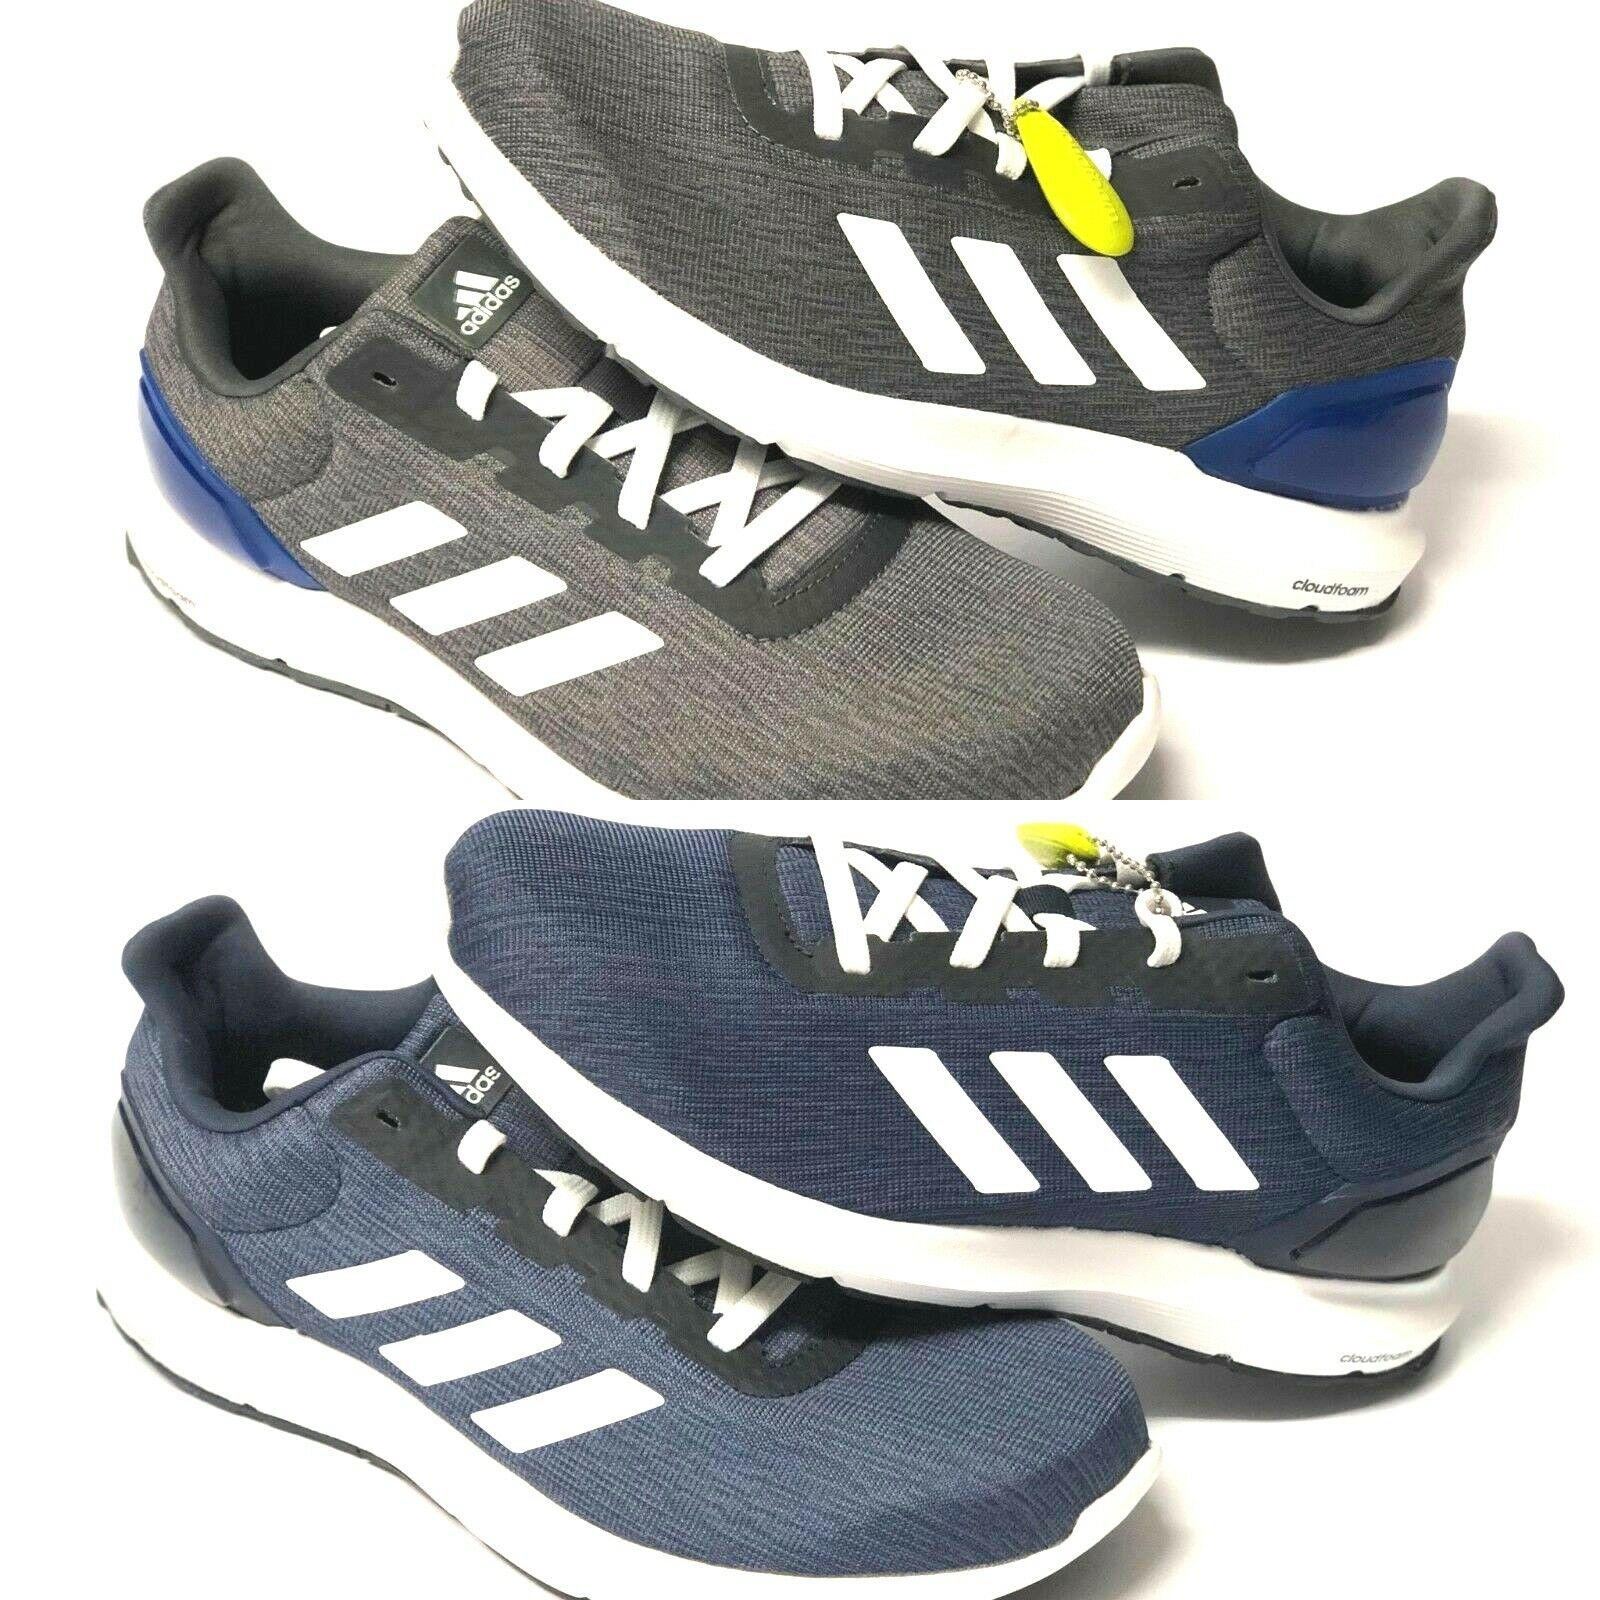 Adidas Men's Running shoesS Cosmic 2 m BB3585 GREY WHITE blueE BB3589 NVY WHT BLK